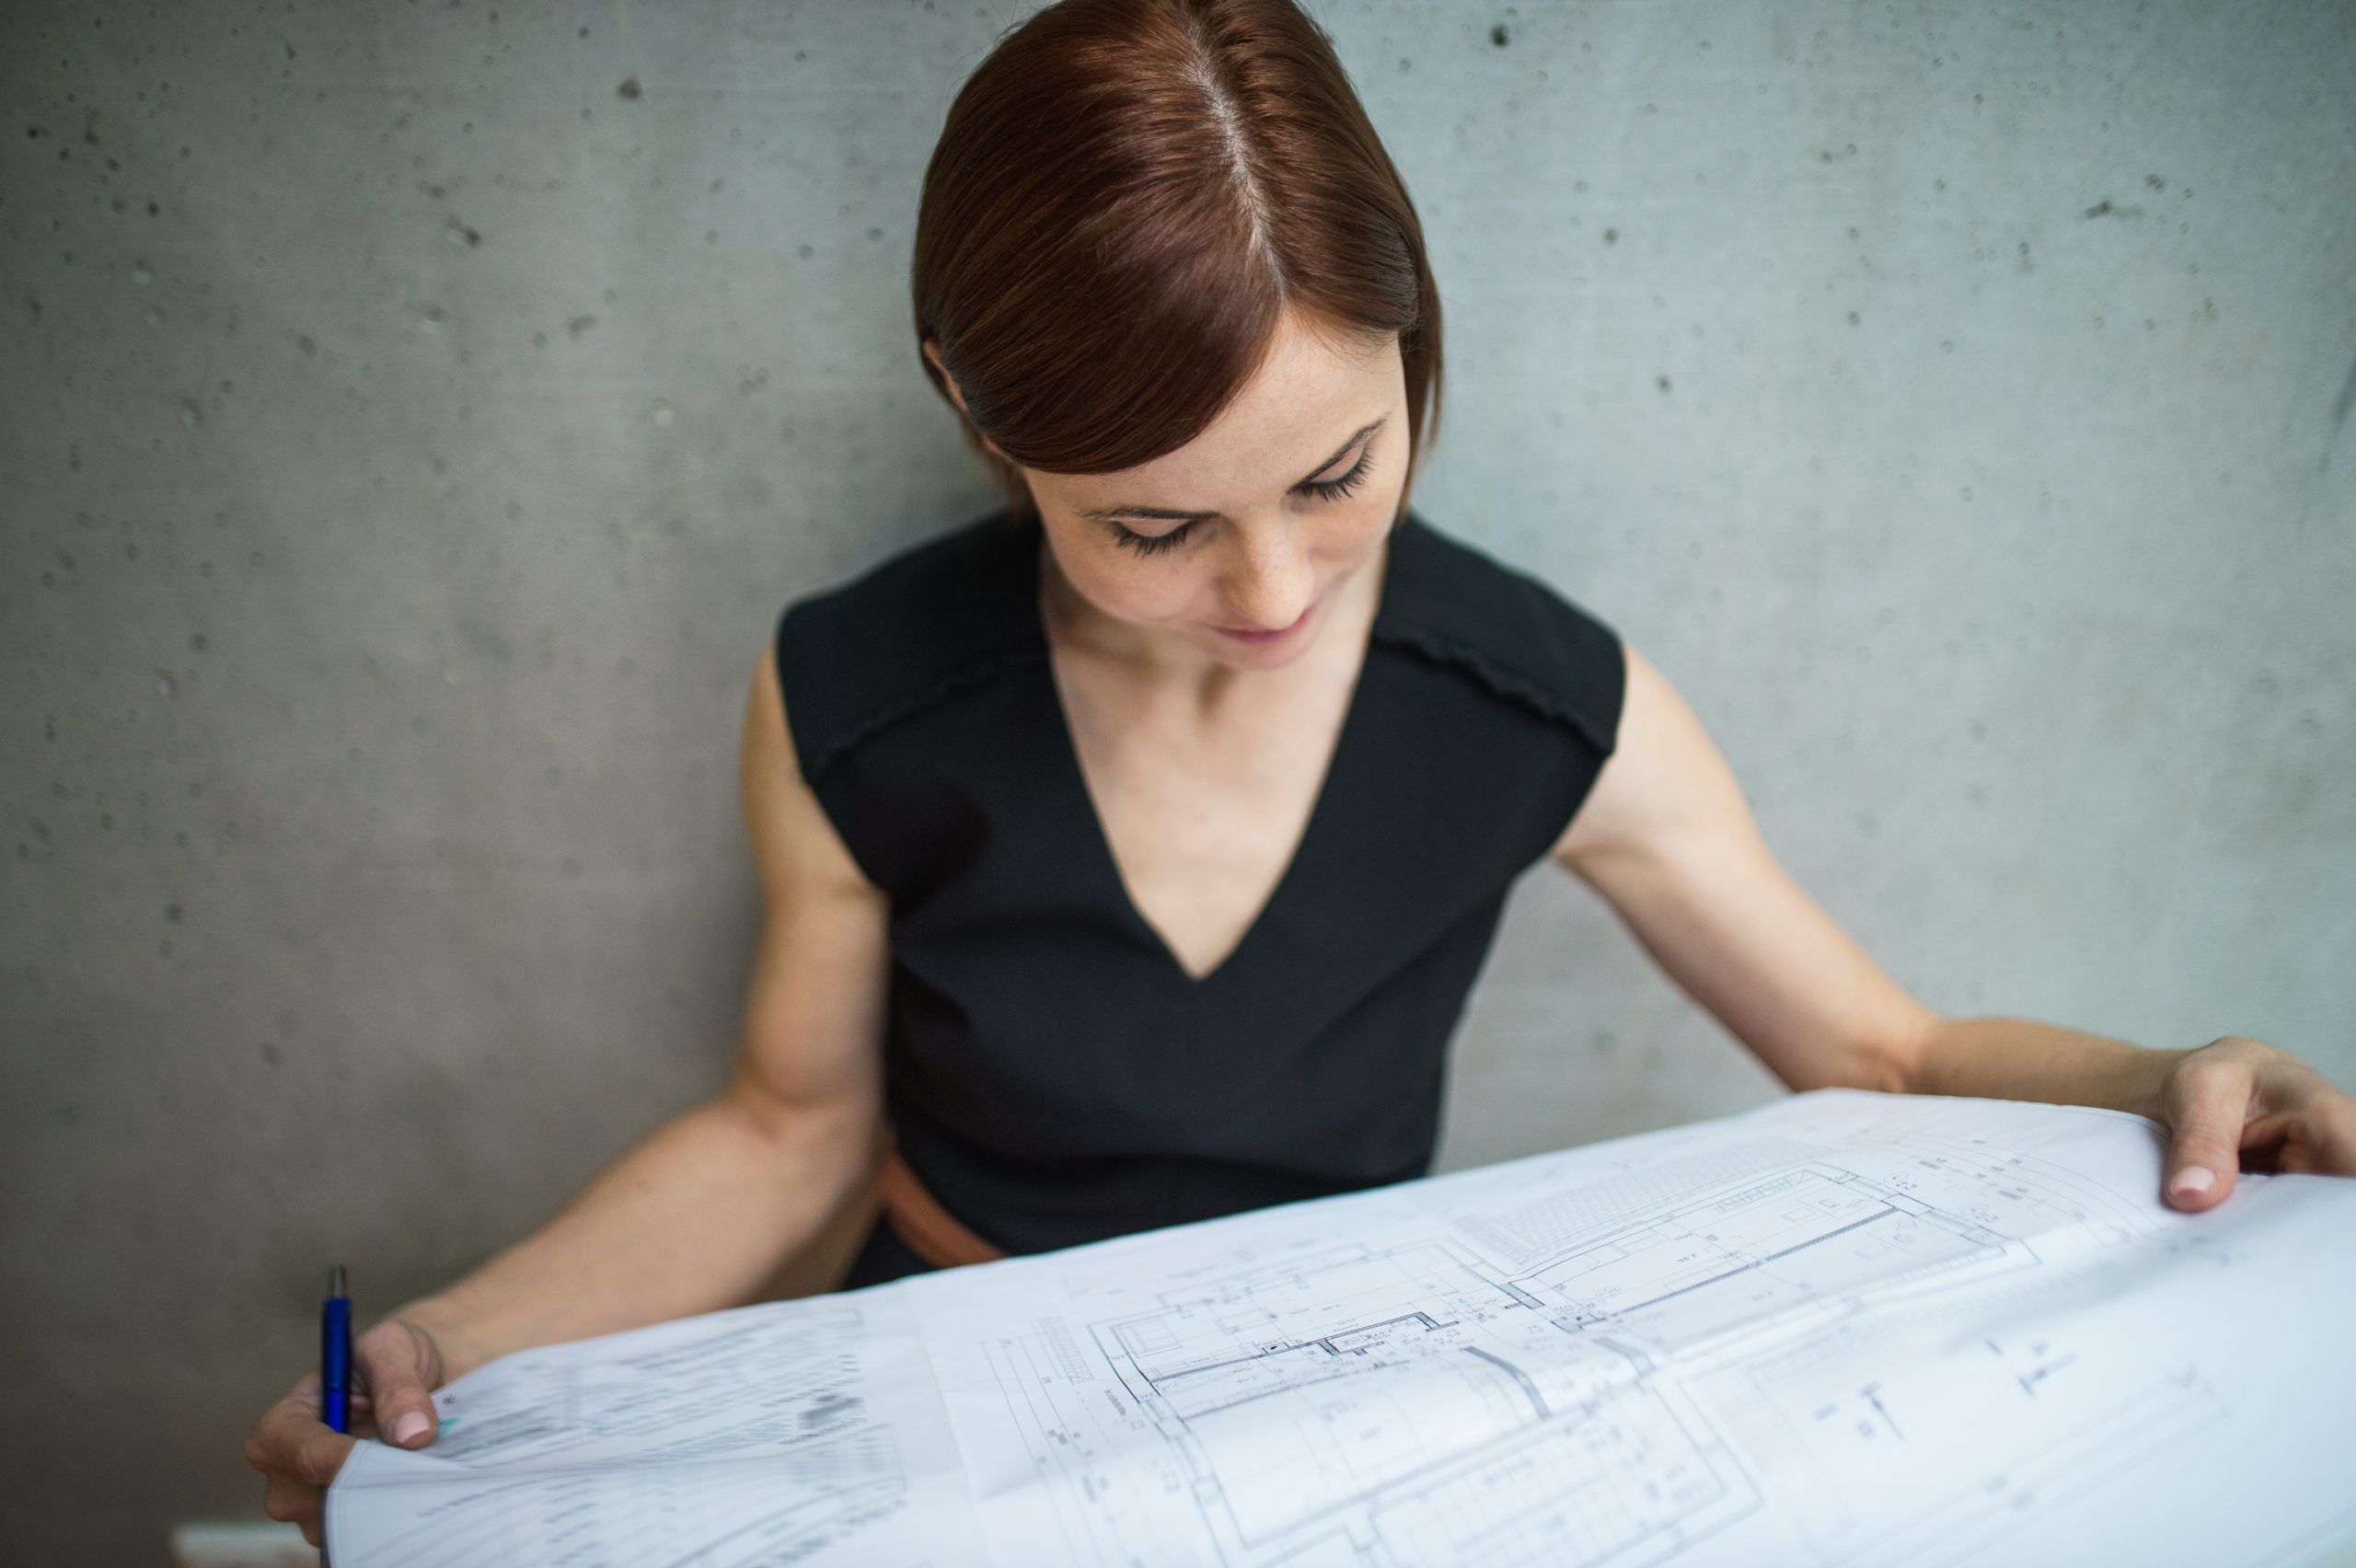 image of a businesswoman looking at a marketing blueprint